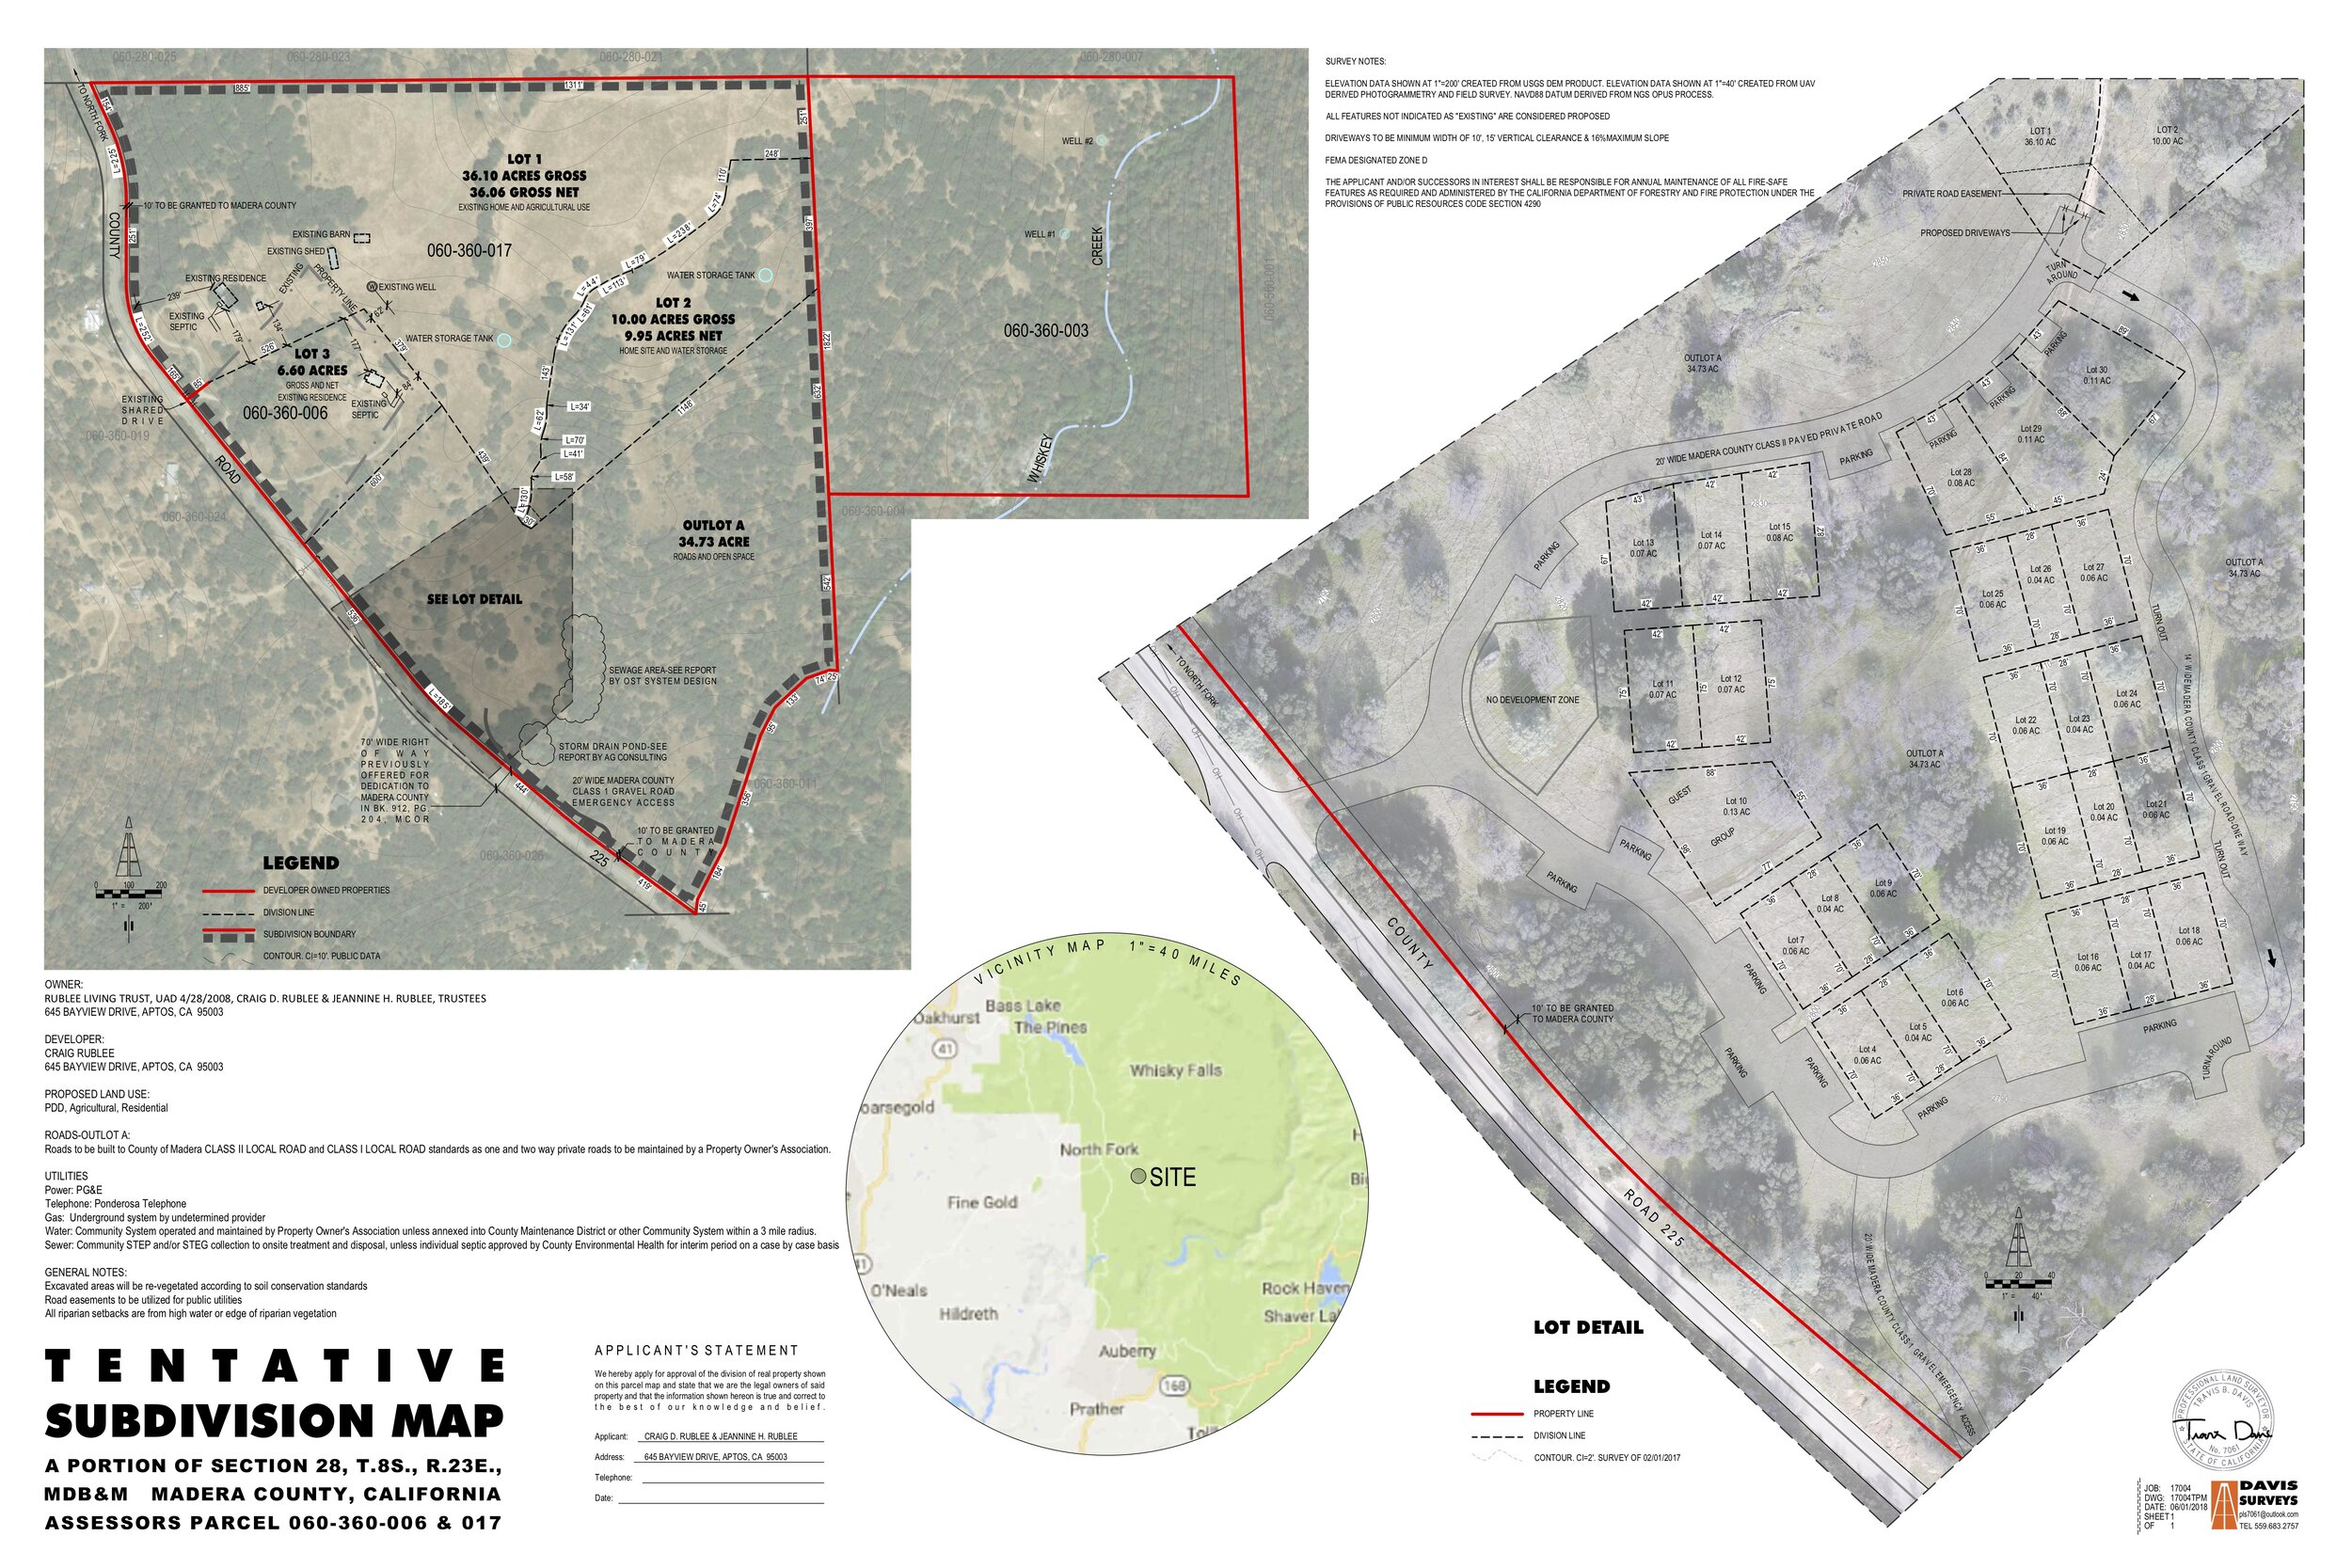 Tentative Subdivision Map approved by the county on October 23rd.